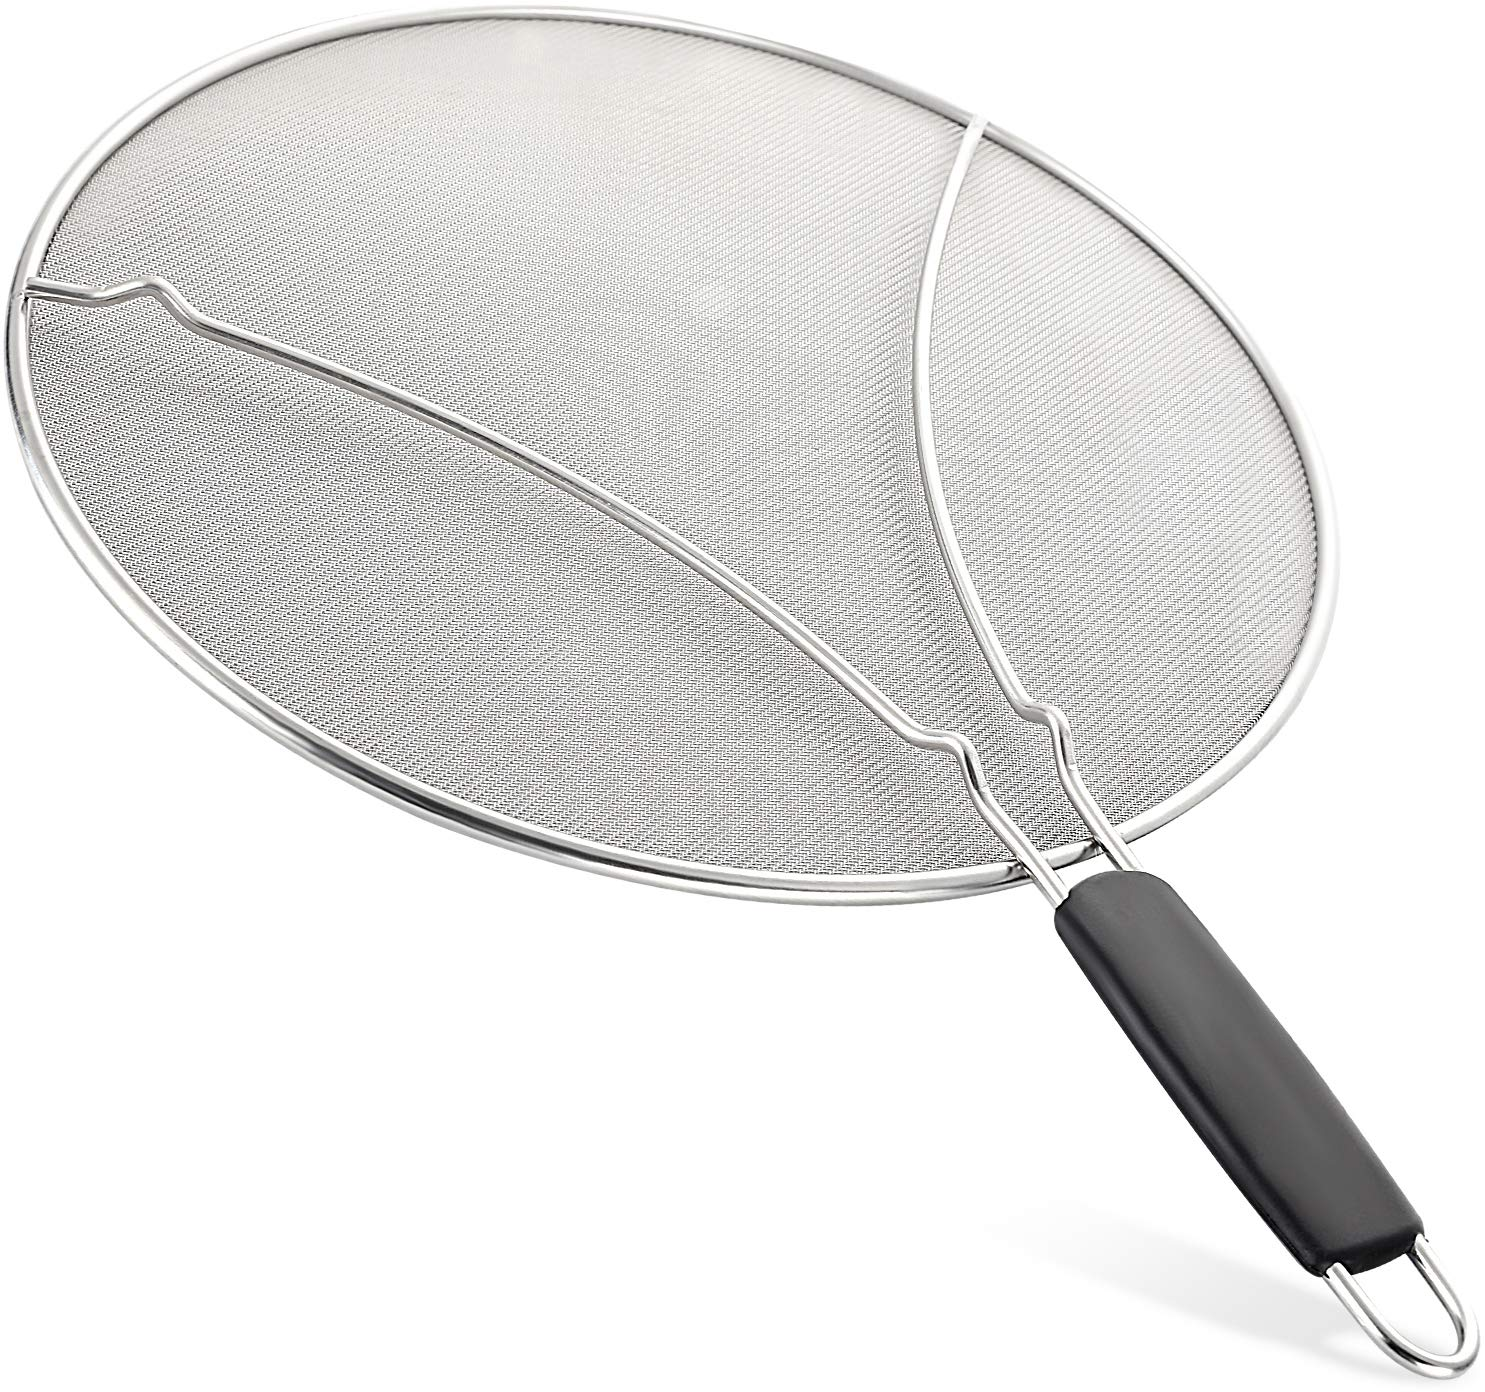 Splatter Screen for Frying Pan - Stops Almost 100% of Hot Oil Splash - Large 13'' Stainless Steel Grease Guard Shield and Catcher- Keeps Stove and Pans Clean & Prevents Burns When Cooking by Zulay by Zulay Kitchen